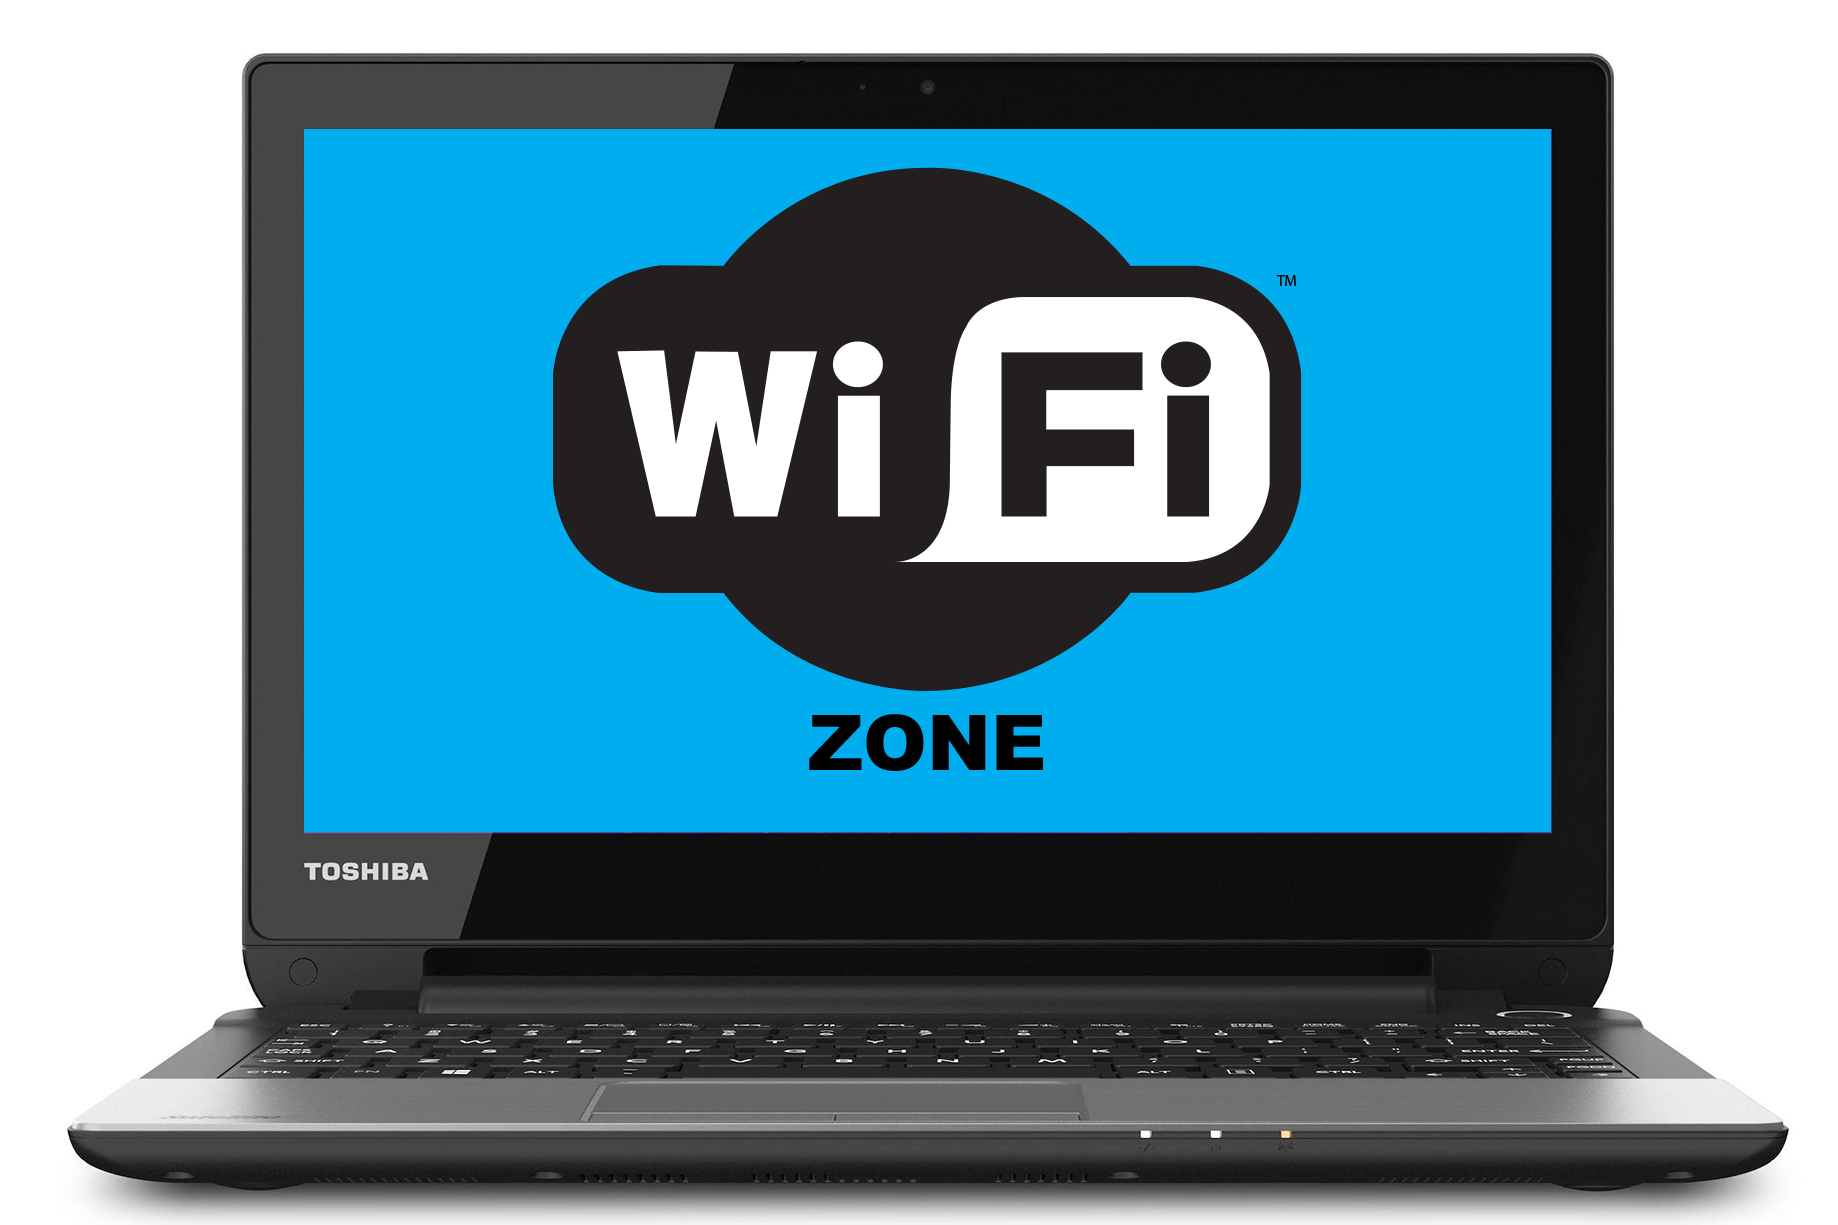 Toshiba laptop with WiFi Zone on the screen.